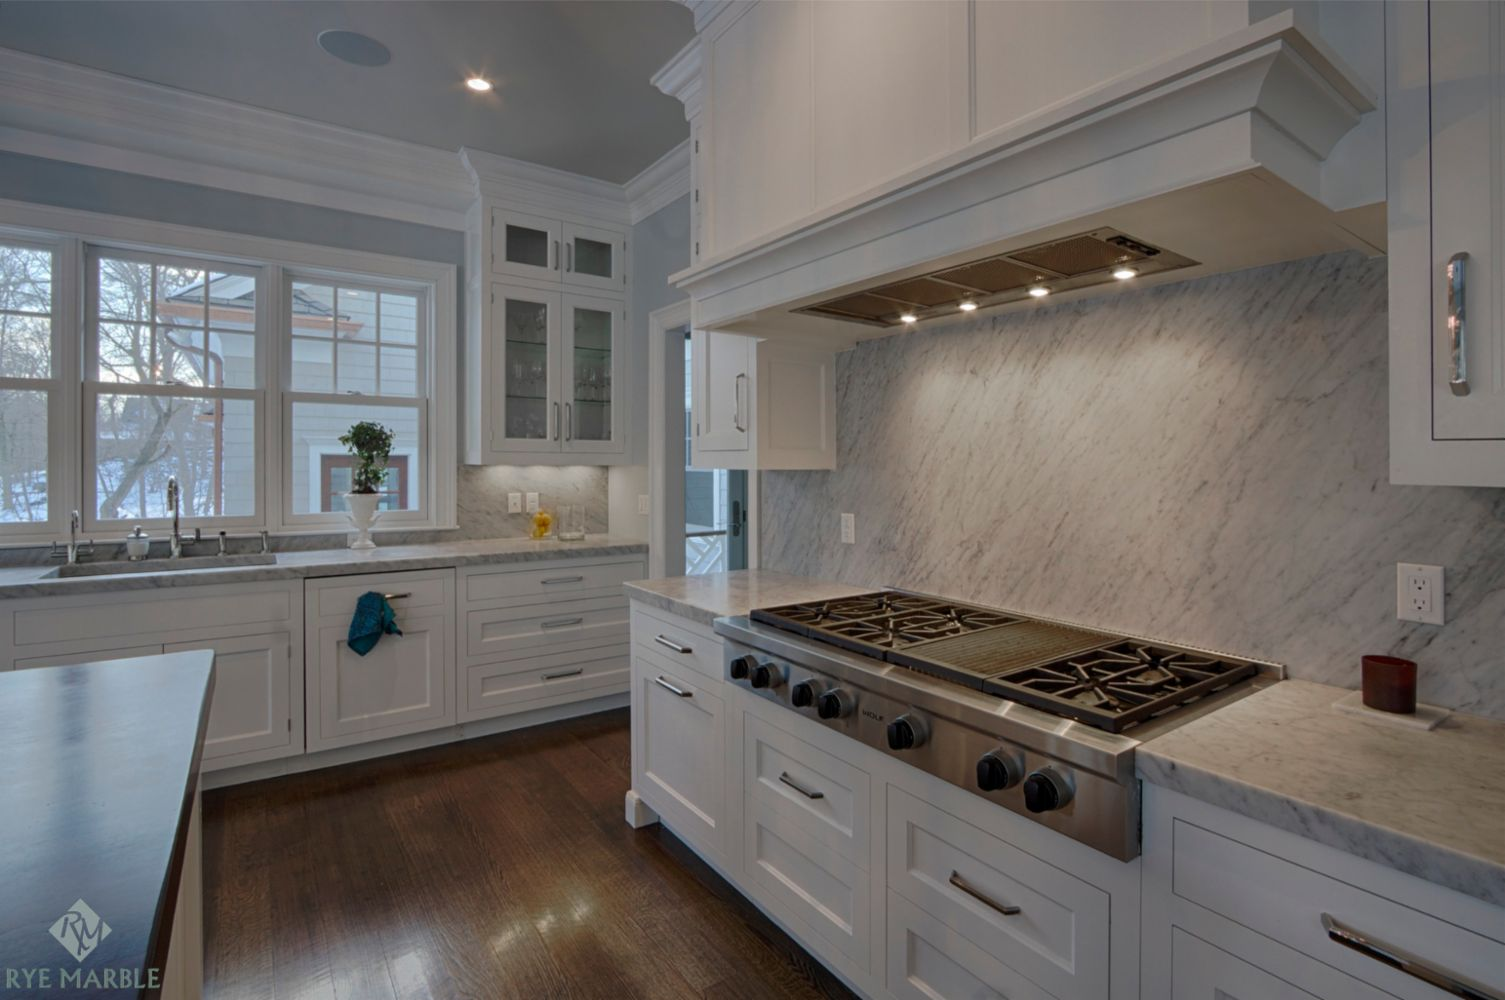 Top Rated Kitchen And Bathroom Remodeling Contractors in Santa Clara ...